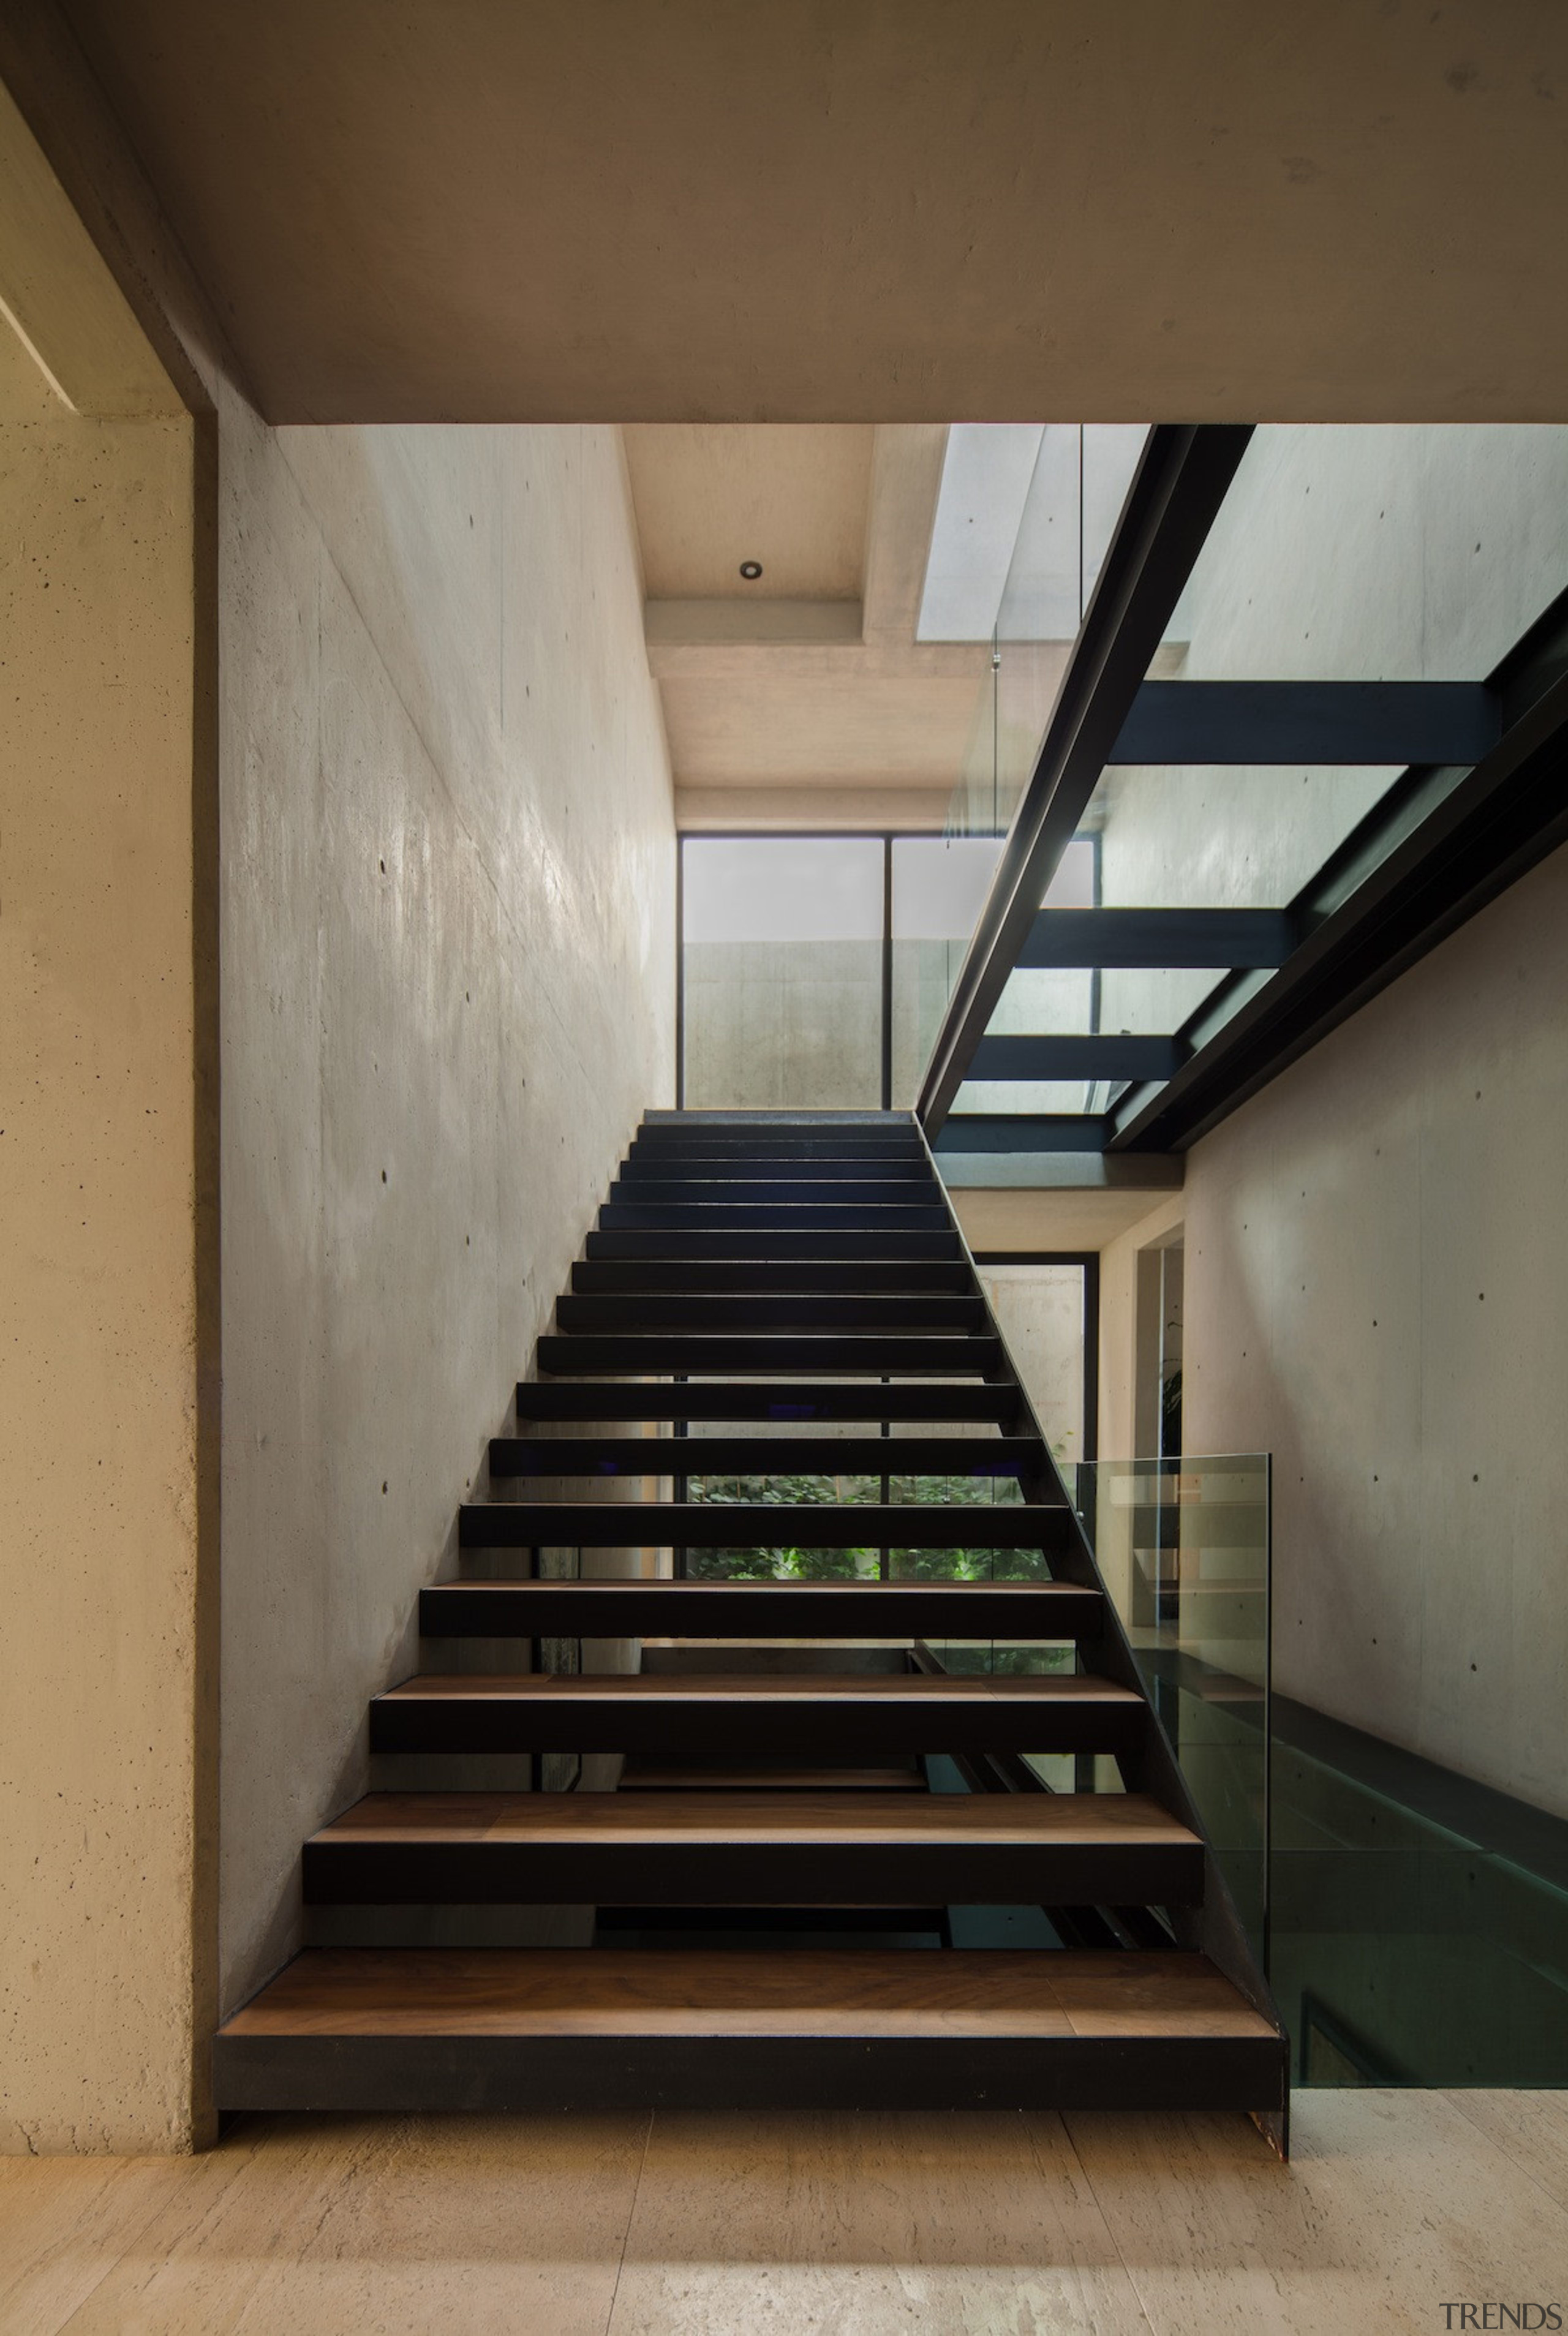 A glass walkway runs above the staircase - architecture, daylighting, handrail, house, interior design, stairs, black, brown, gray